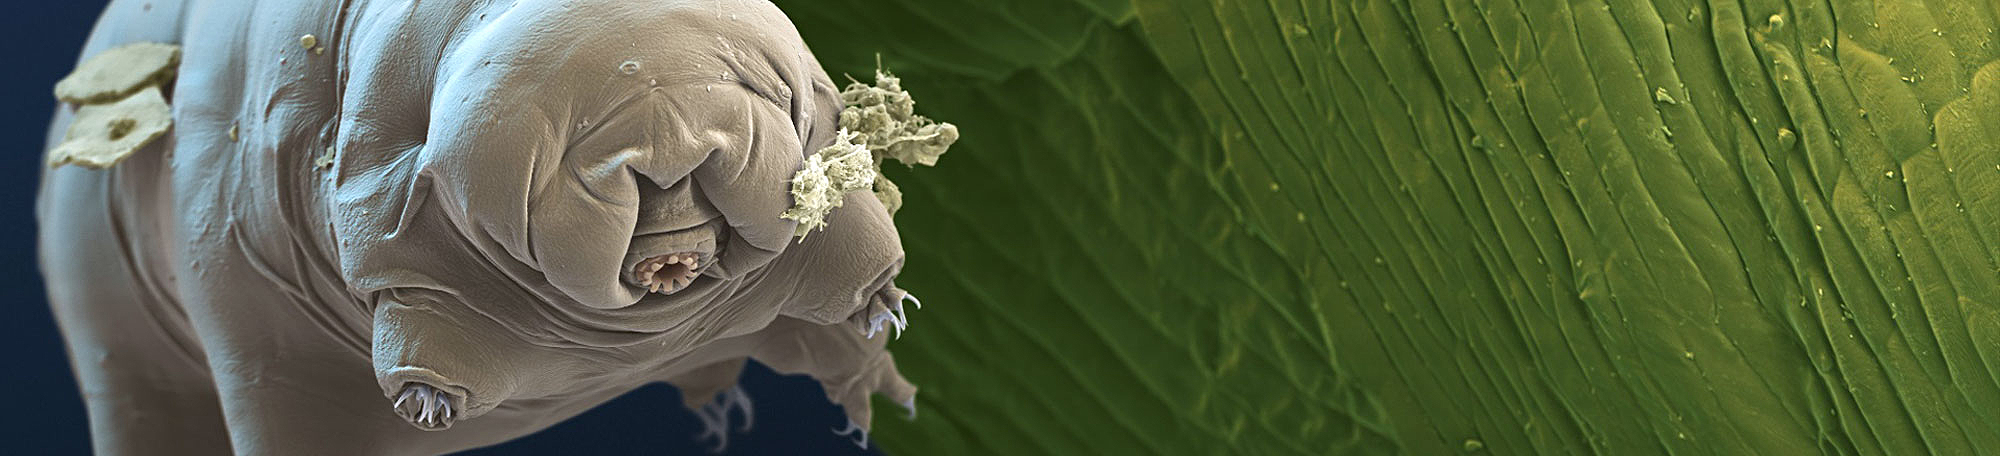 Image of microscopic organism, tardigrade